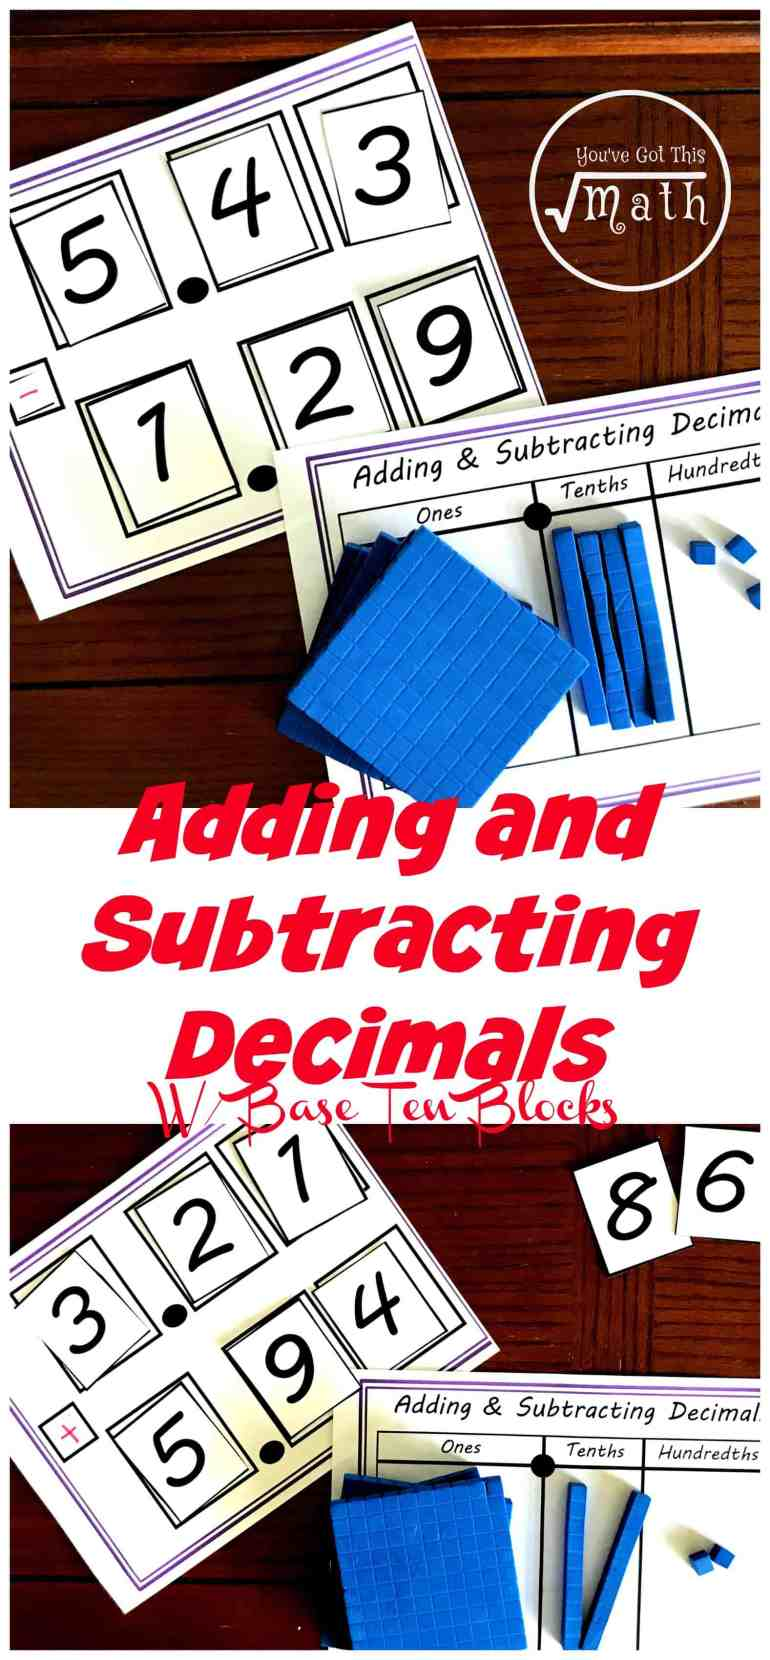 practice addition and subtraction of decimals with this hands-on